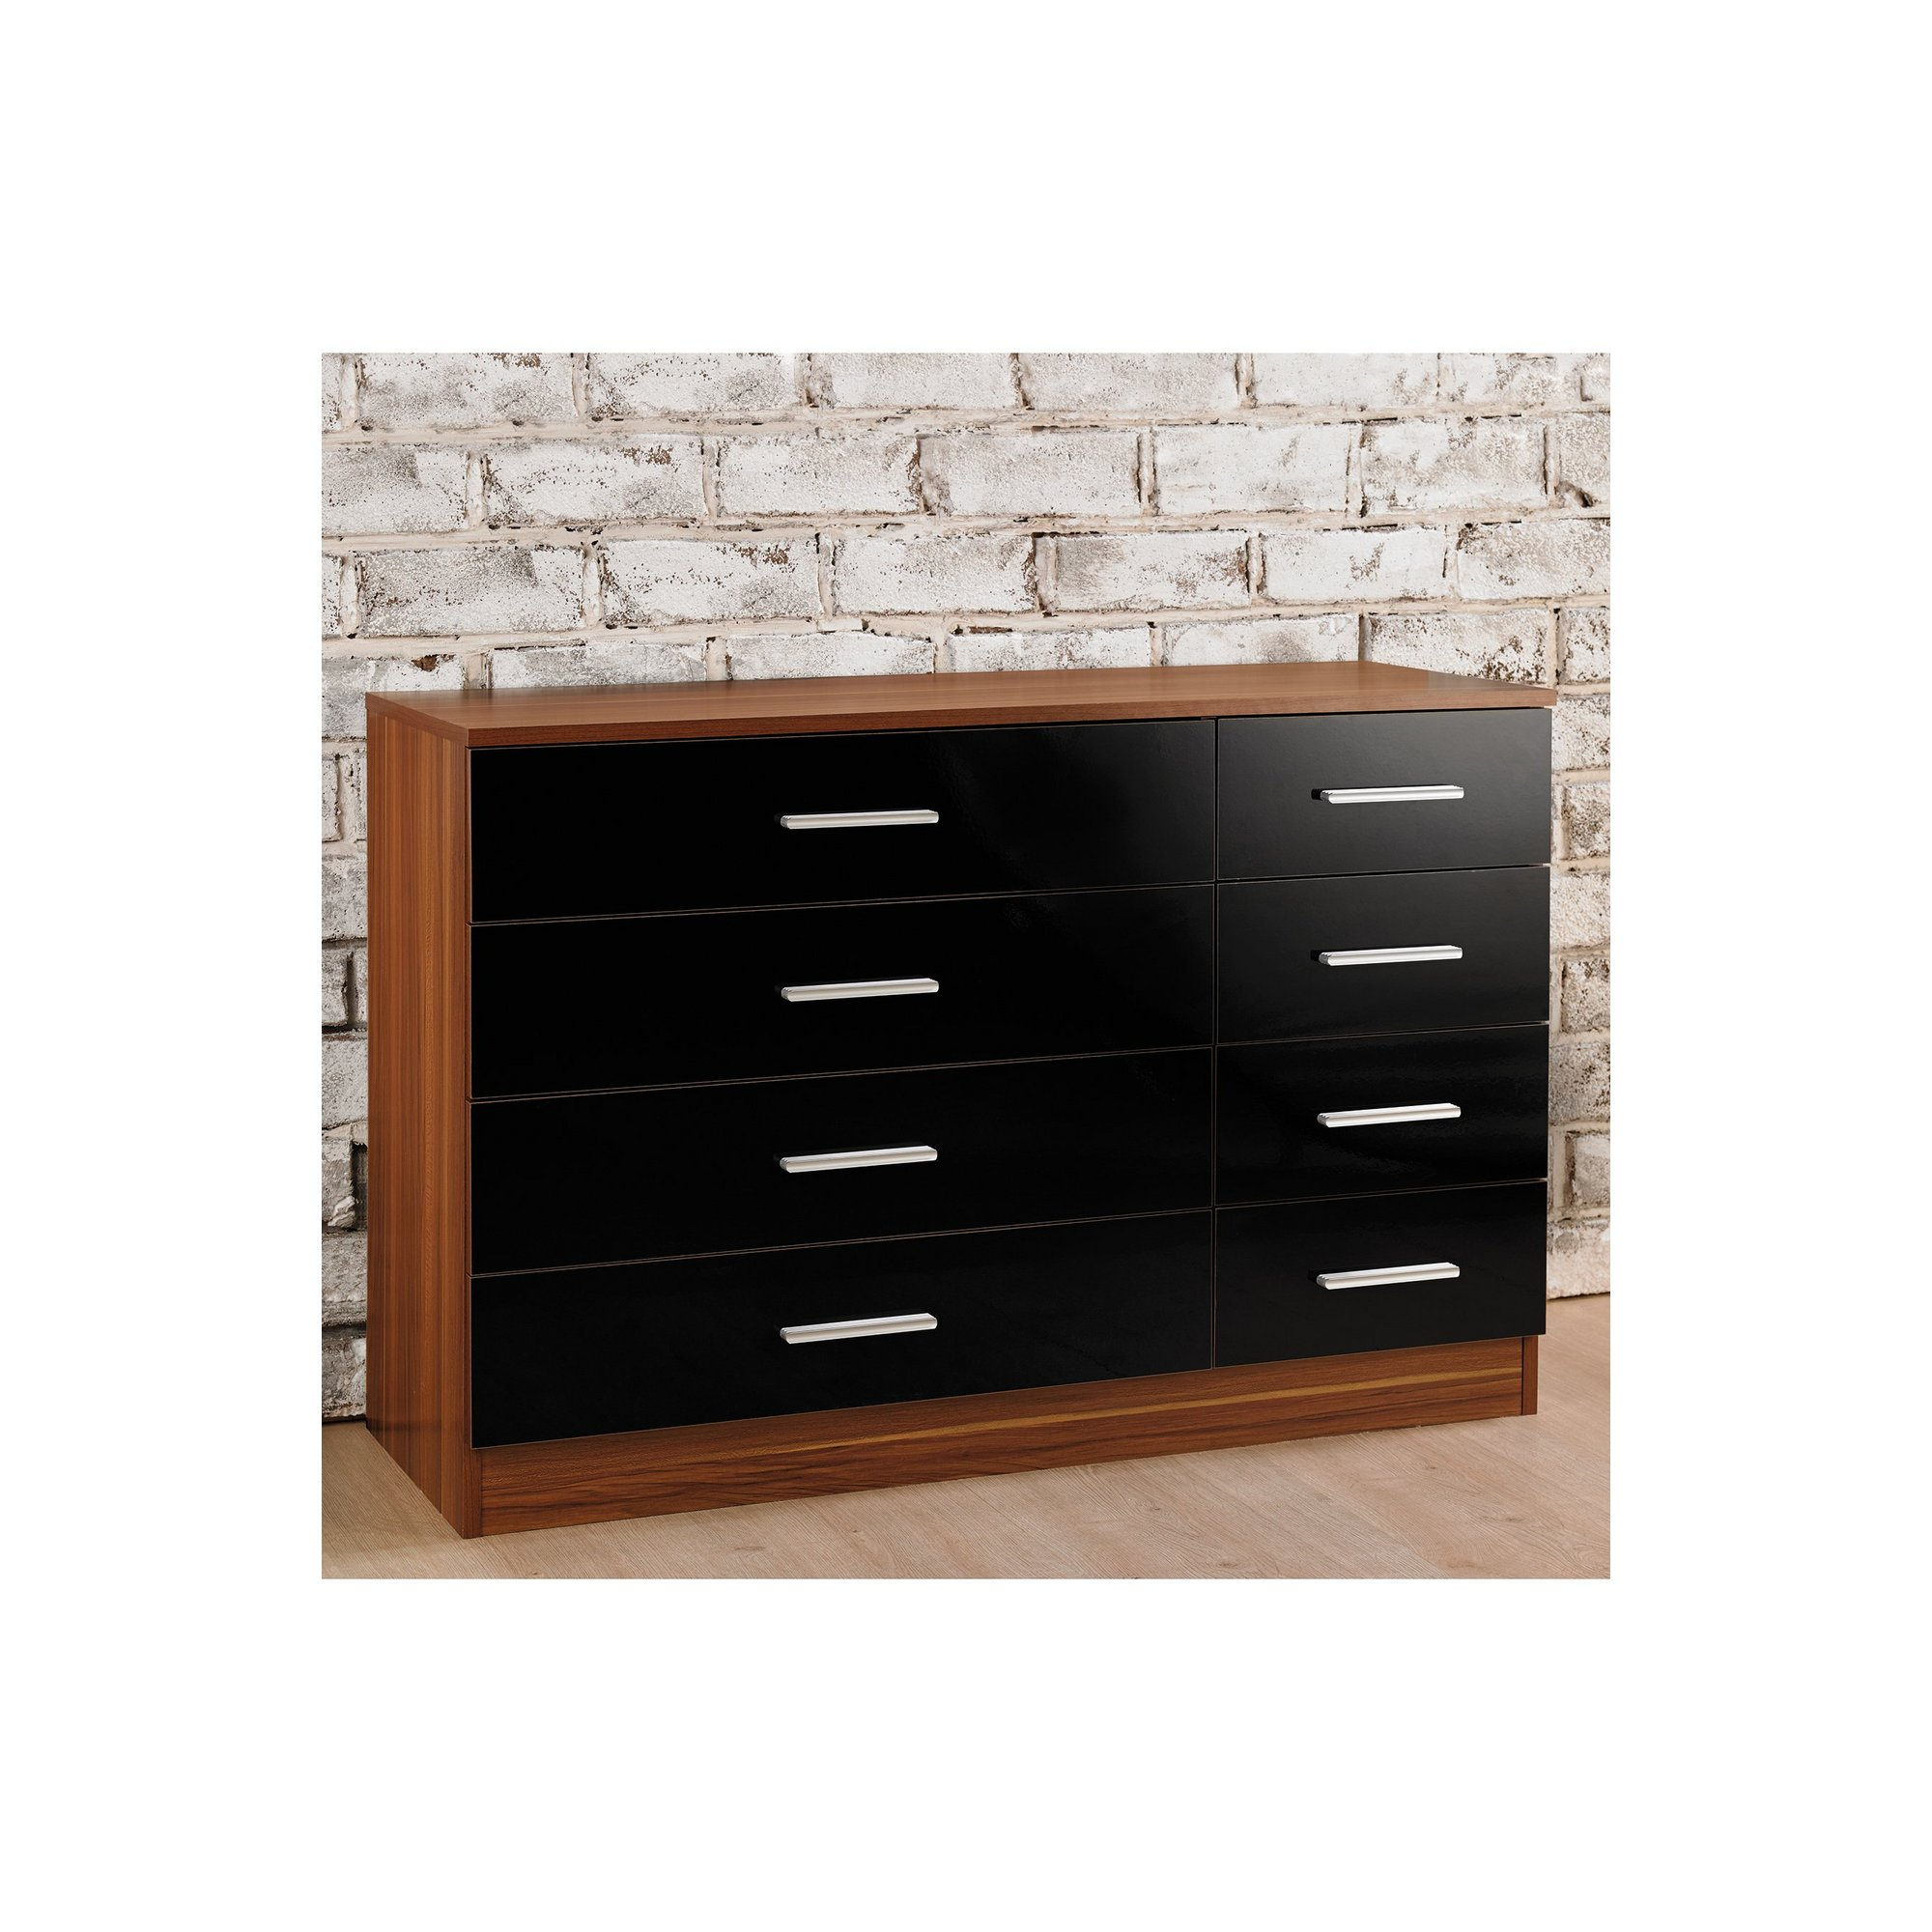 Image of Carleton Multi Chest of Drawers